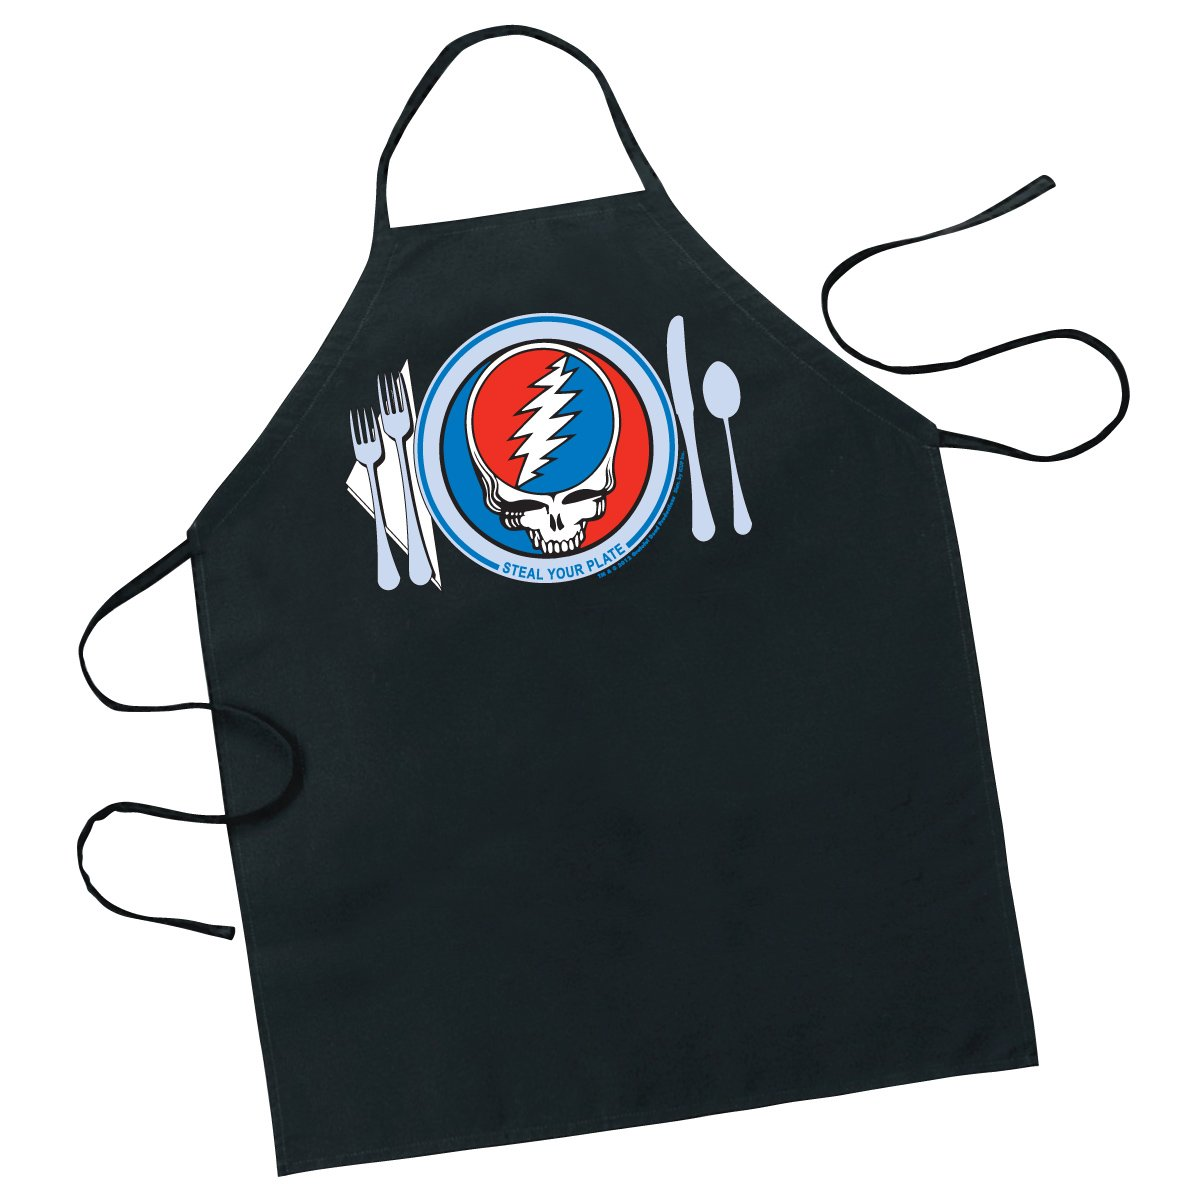 ICUP Grateful Dead Steal Your Plate Apron by ICUP